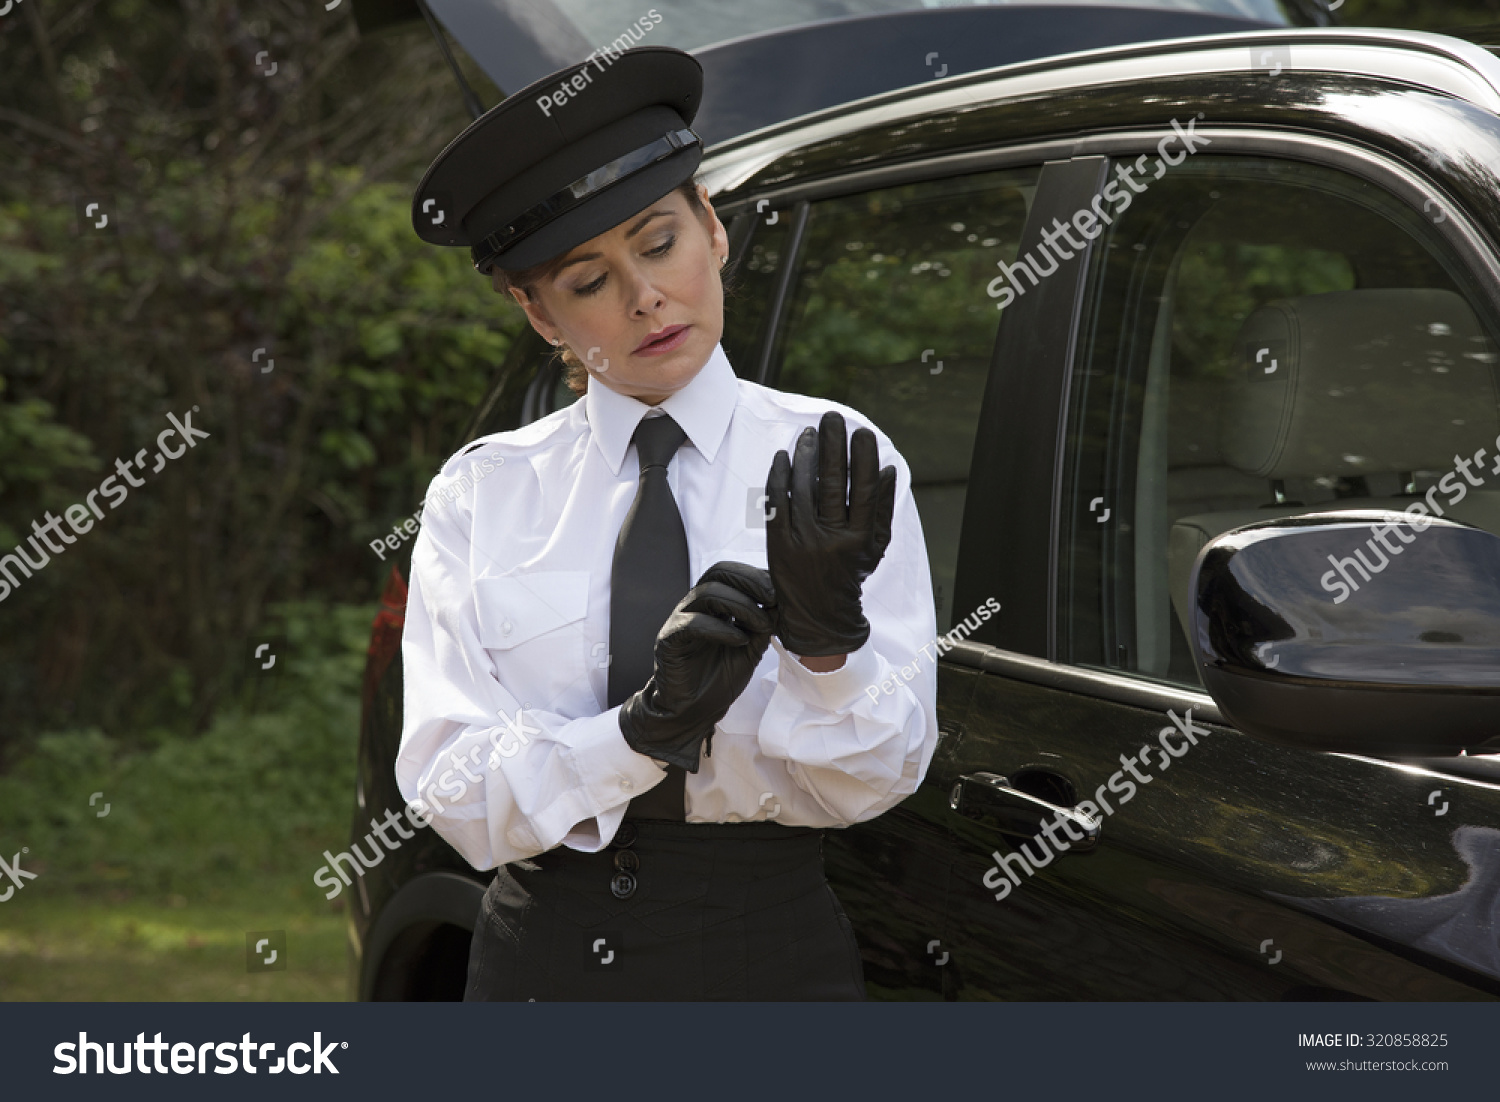 Black leather uniform gloves - Woman Chauffeur Putting On Her Uniform Black Leather Gloves